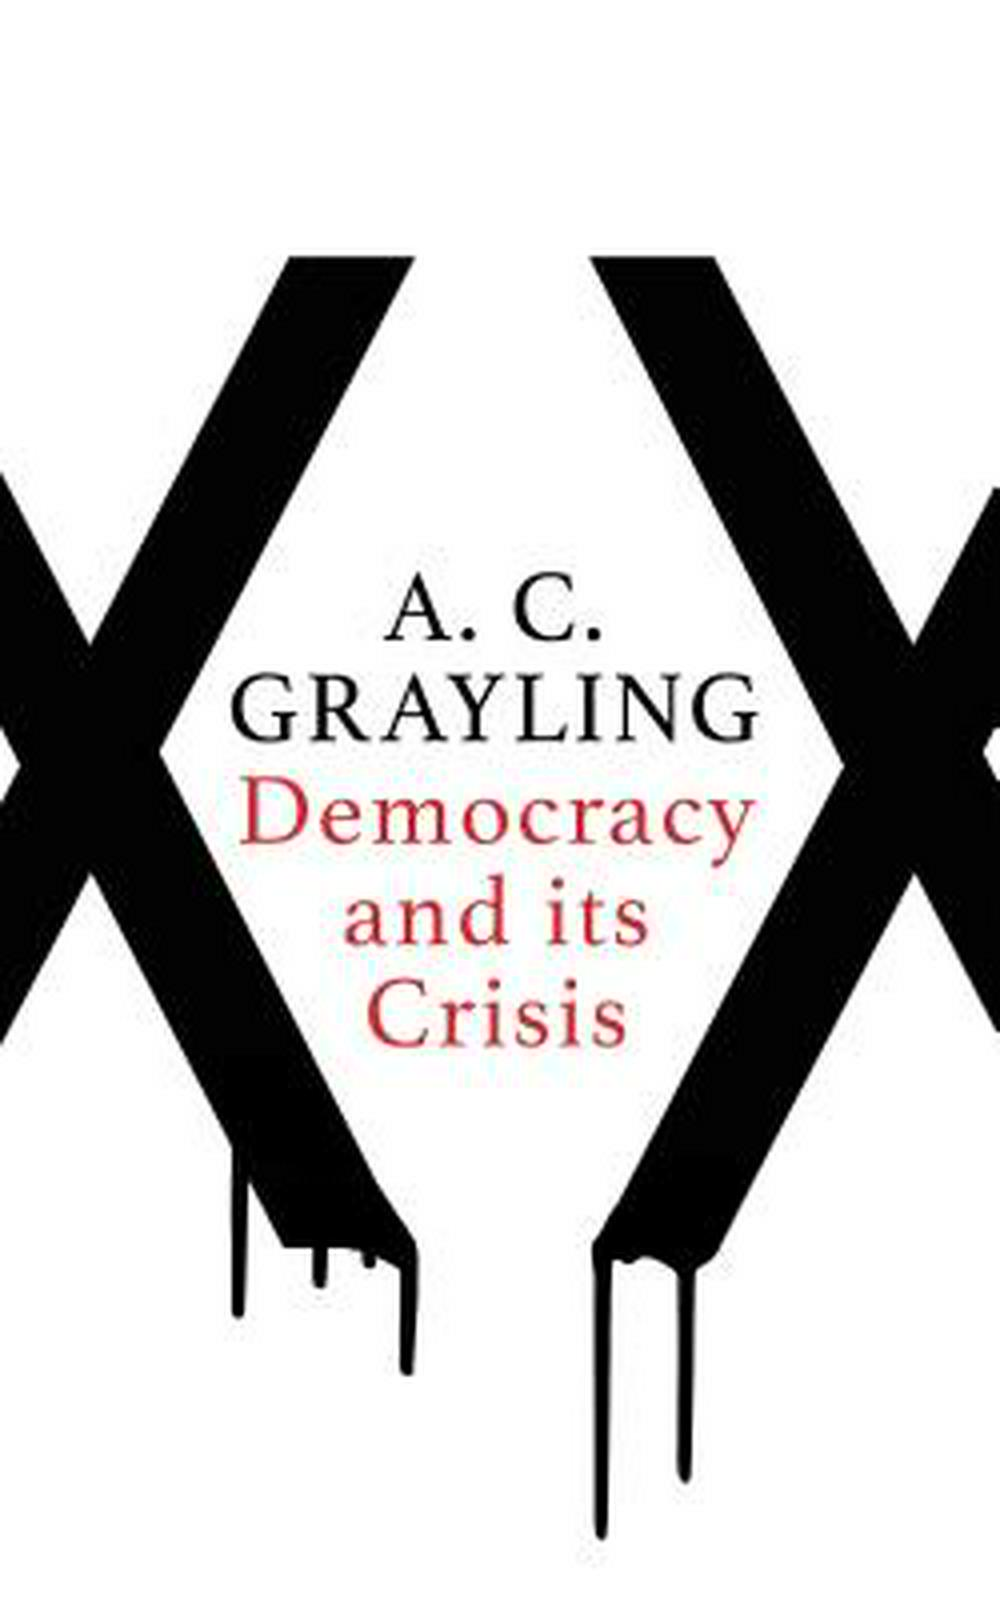 Democracy and its Crisis by A. C. Grayling, ISBN: 9781786072894